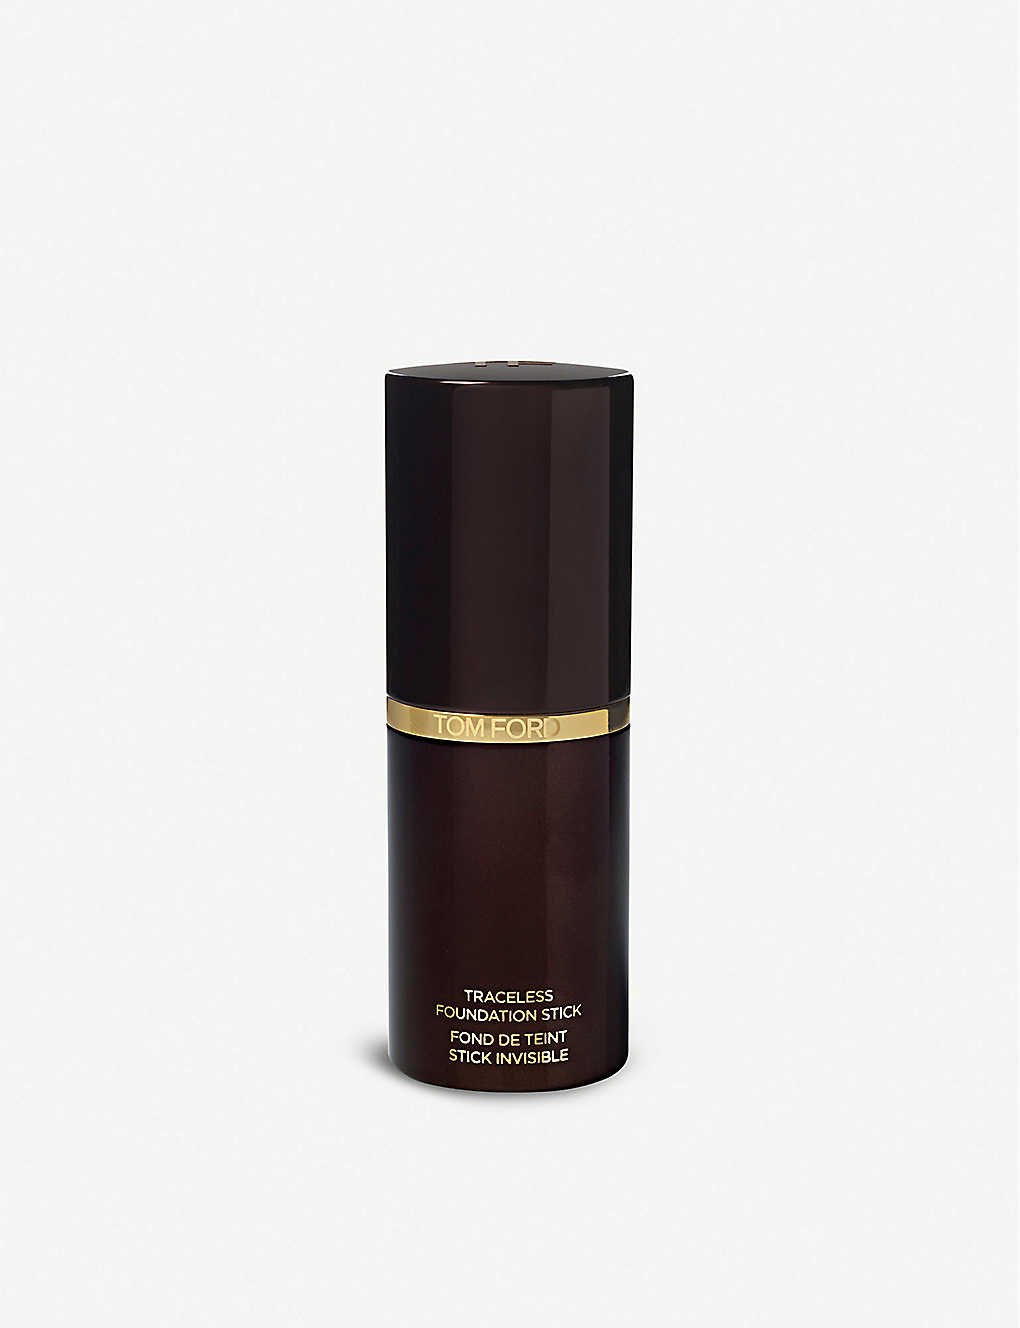 TOM FORD: Traceless Foundation Stick